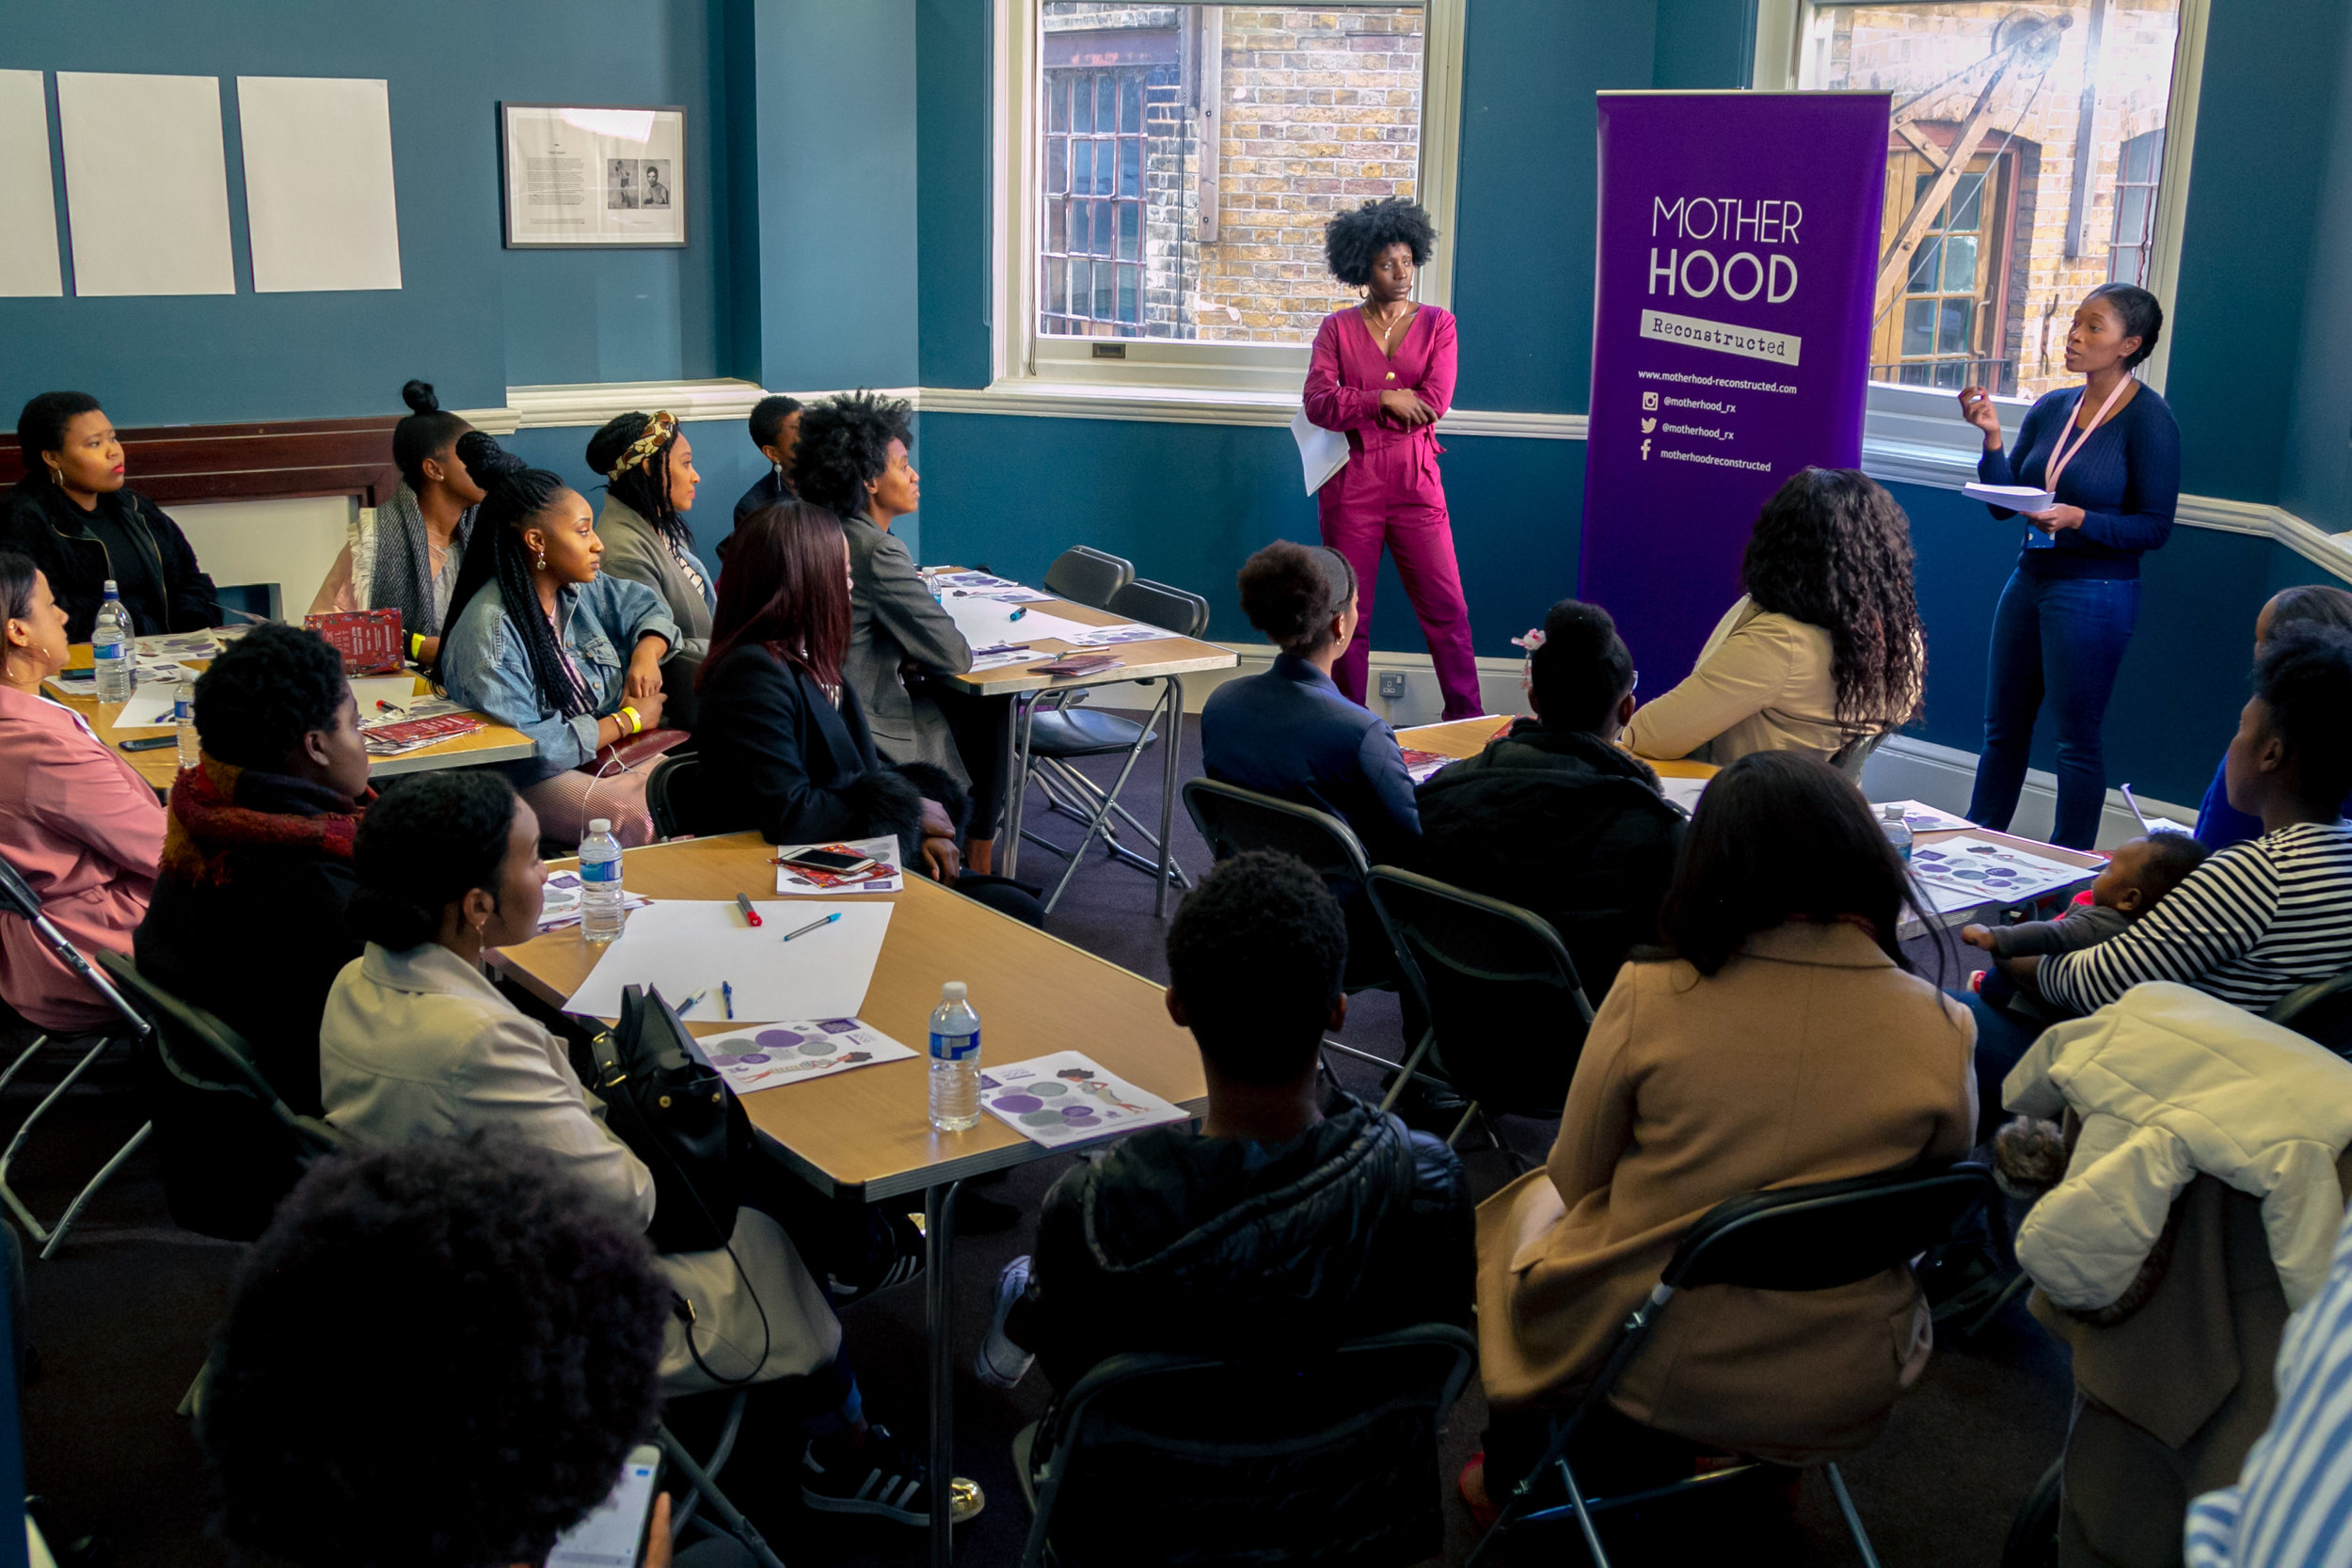 Workshops - Workshops ranged from Black motherhood, employability, gender and sexuality + more.